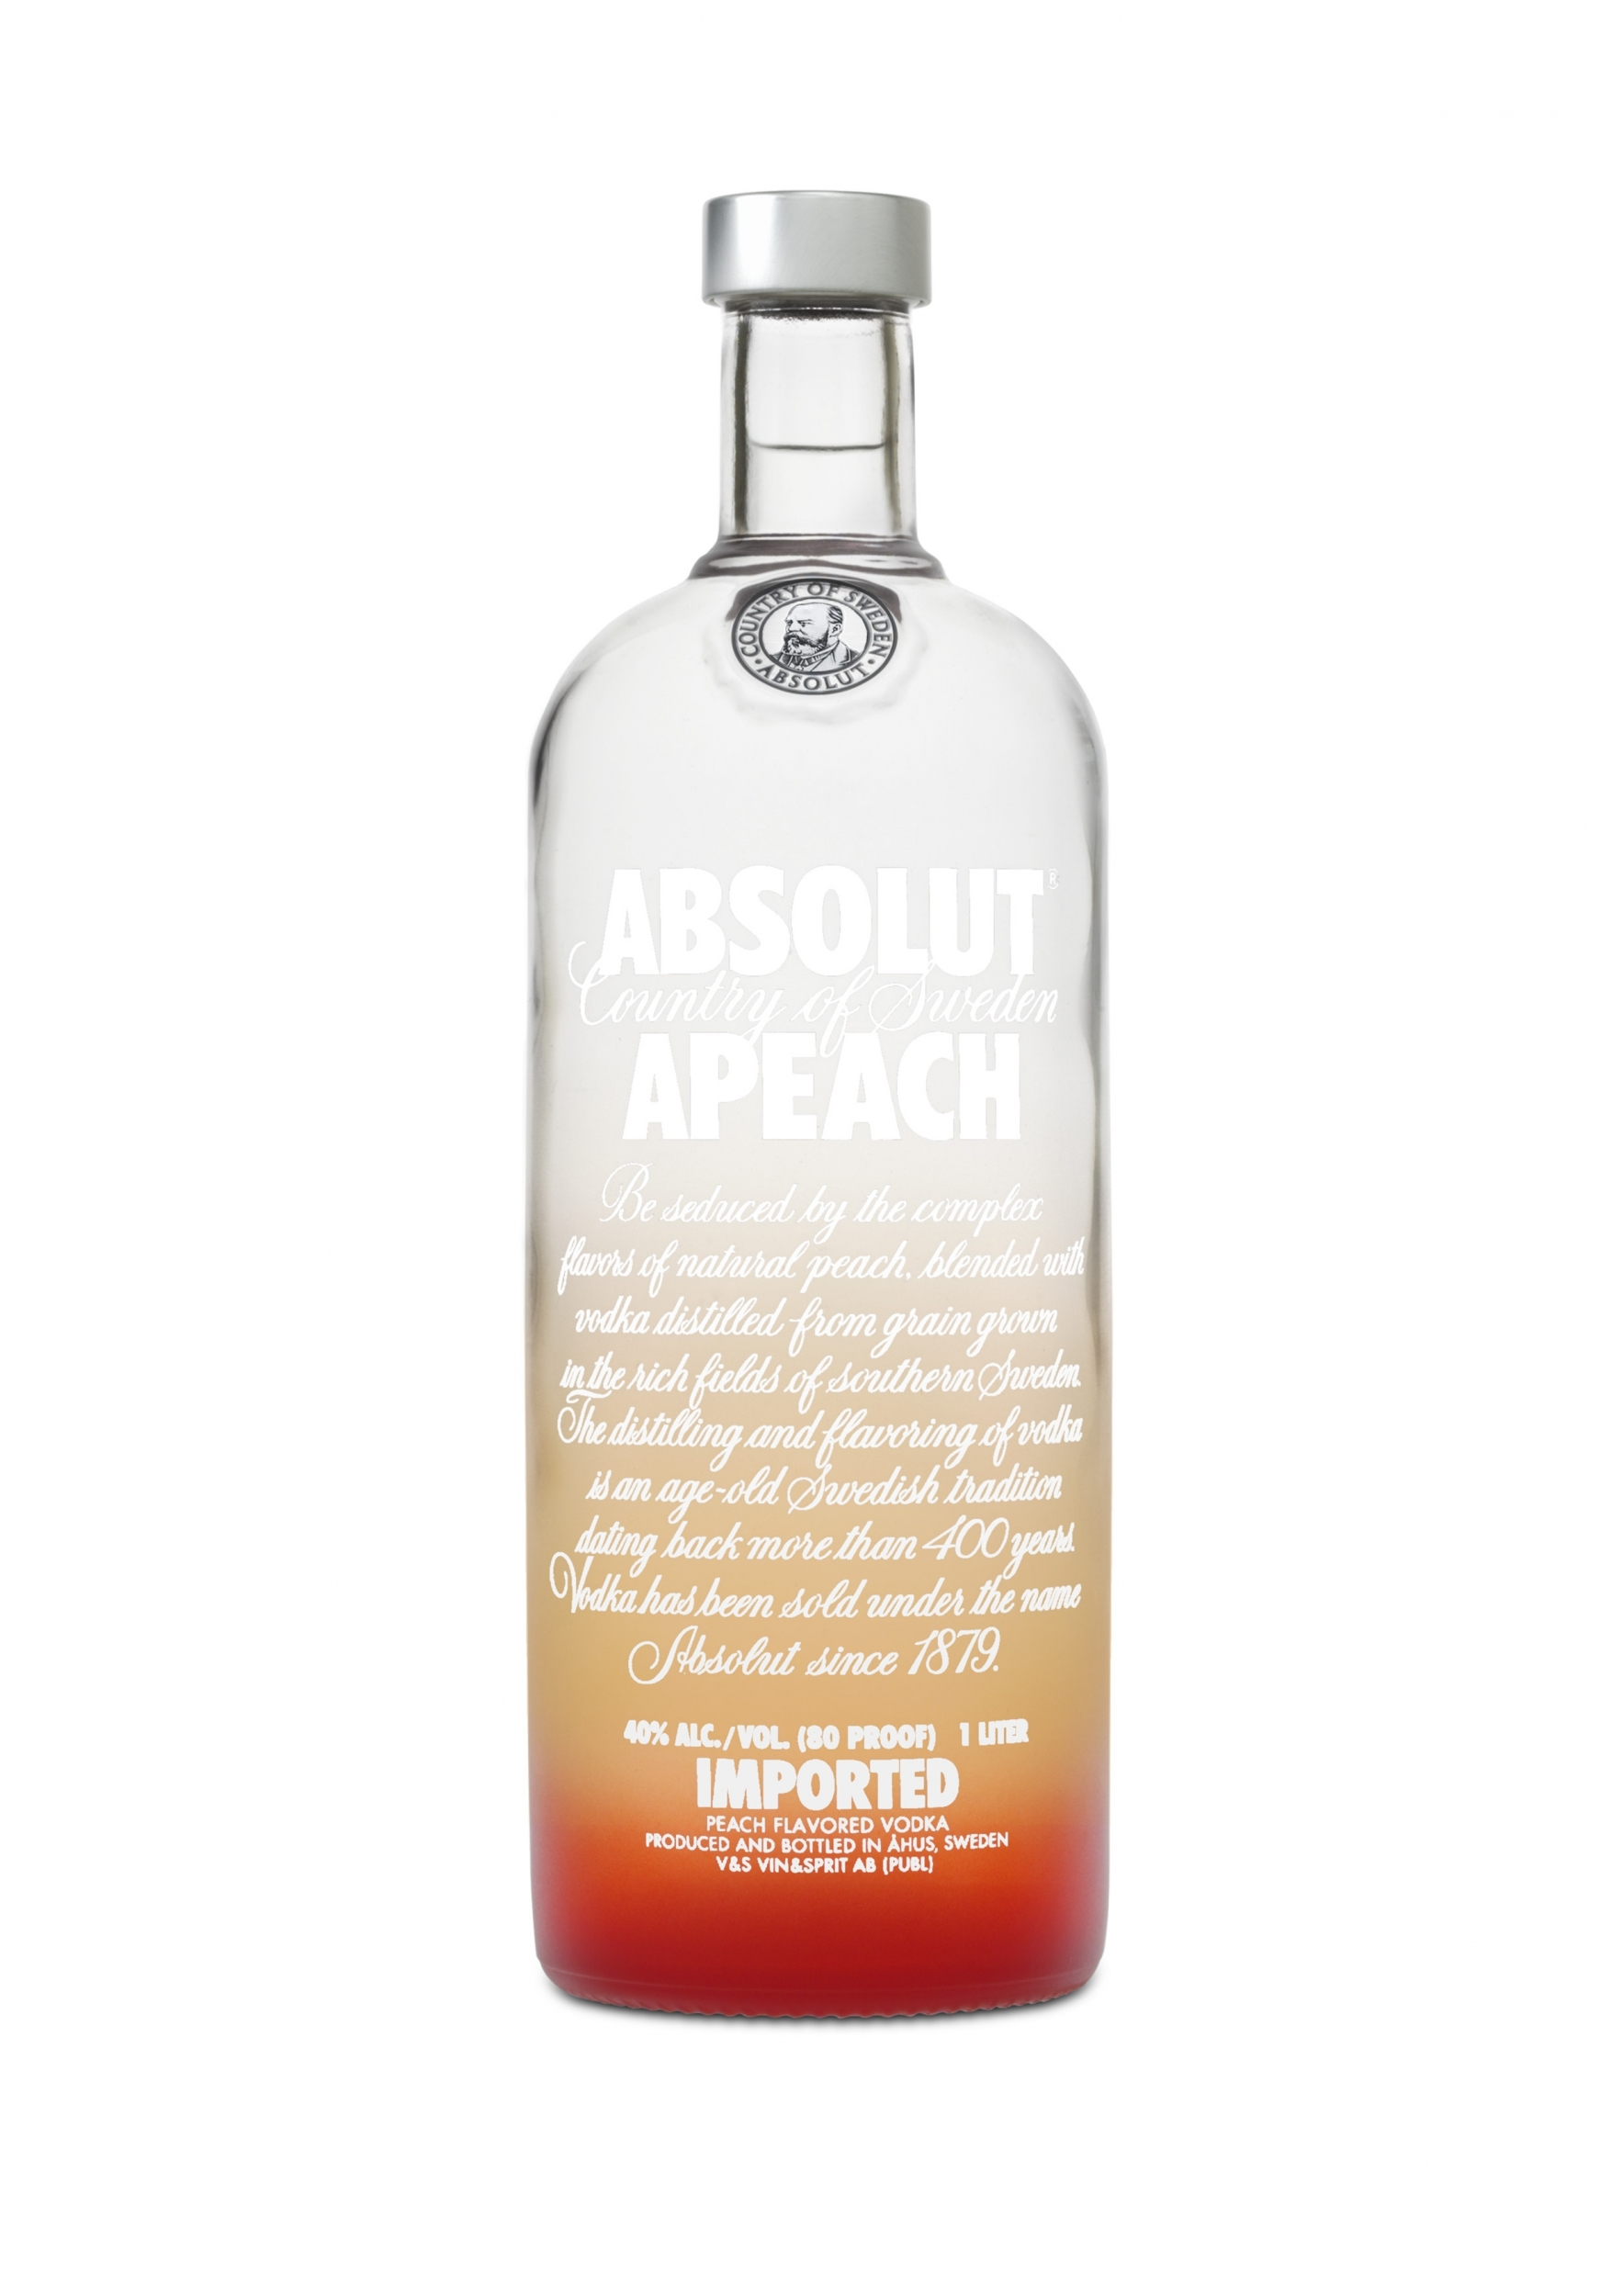 ABSOLUT Apeach 40%